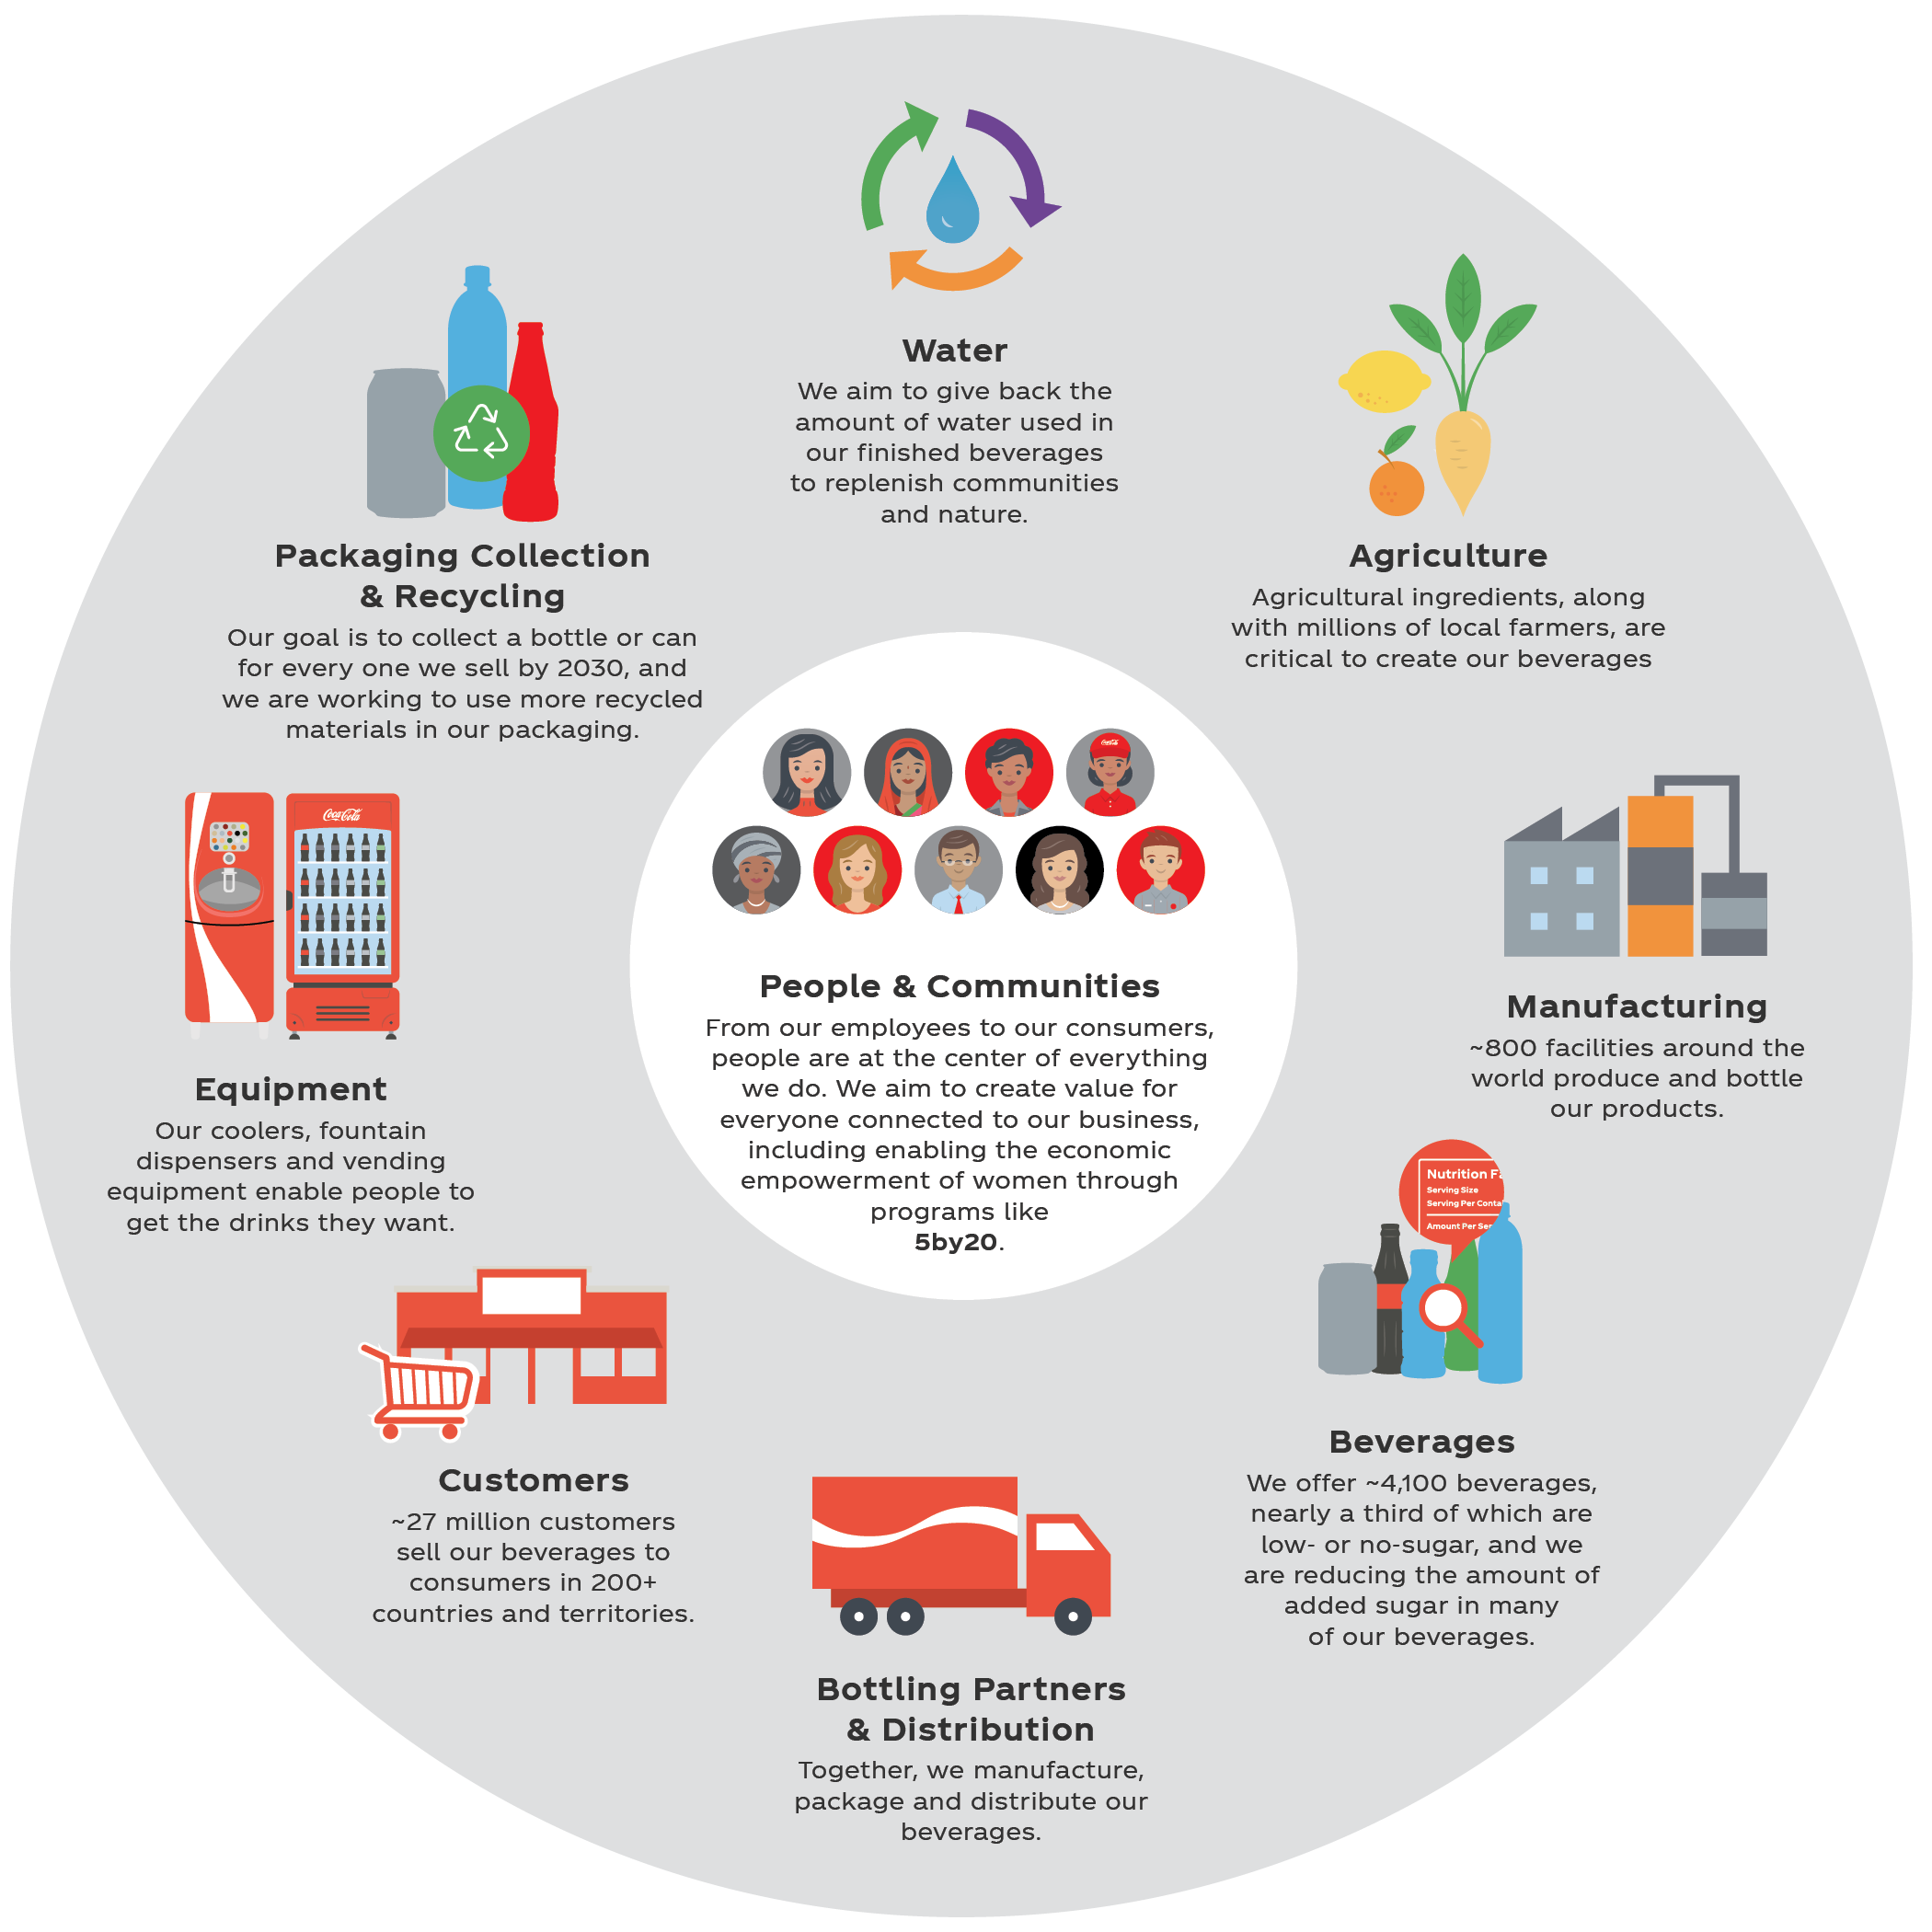 Coca-Cola System and Value Chain: The Coca-Cola Company